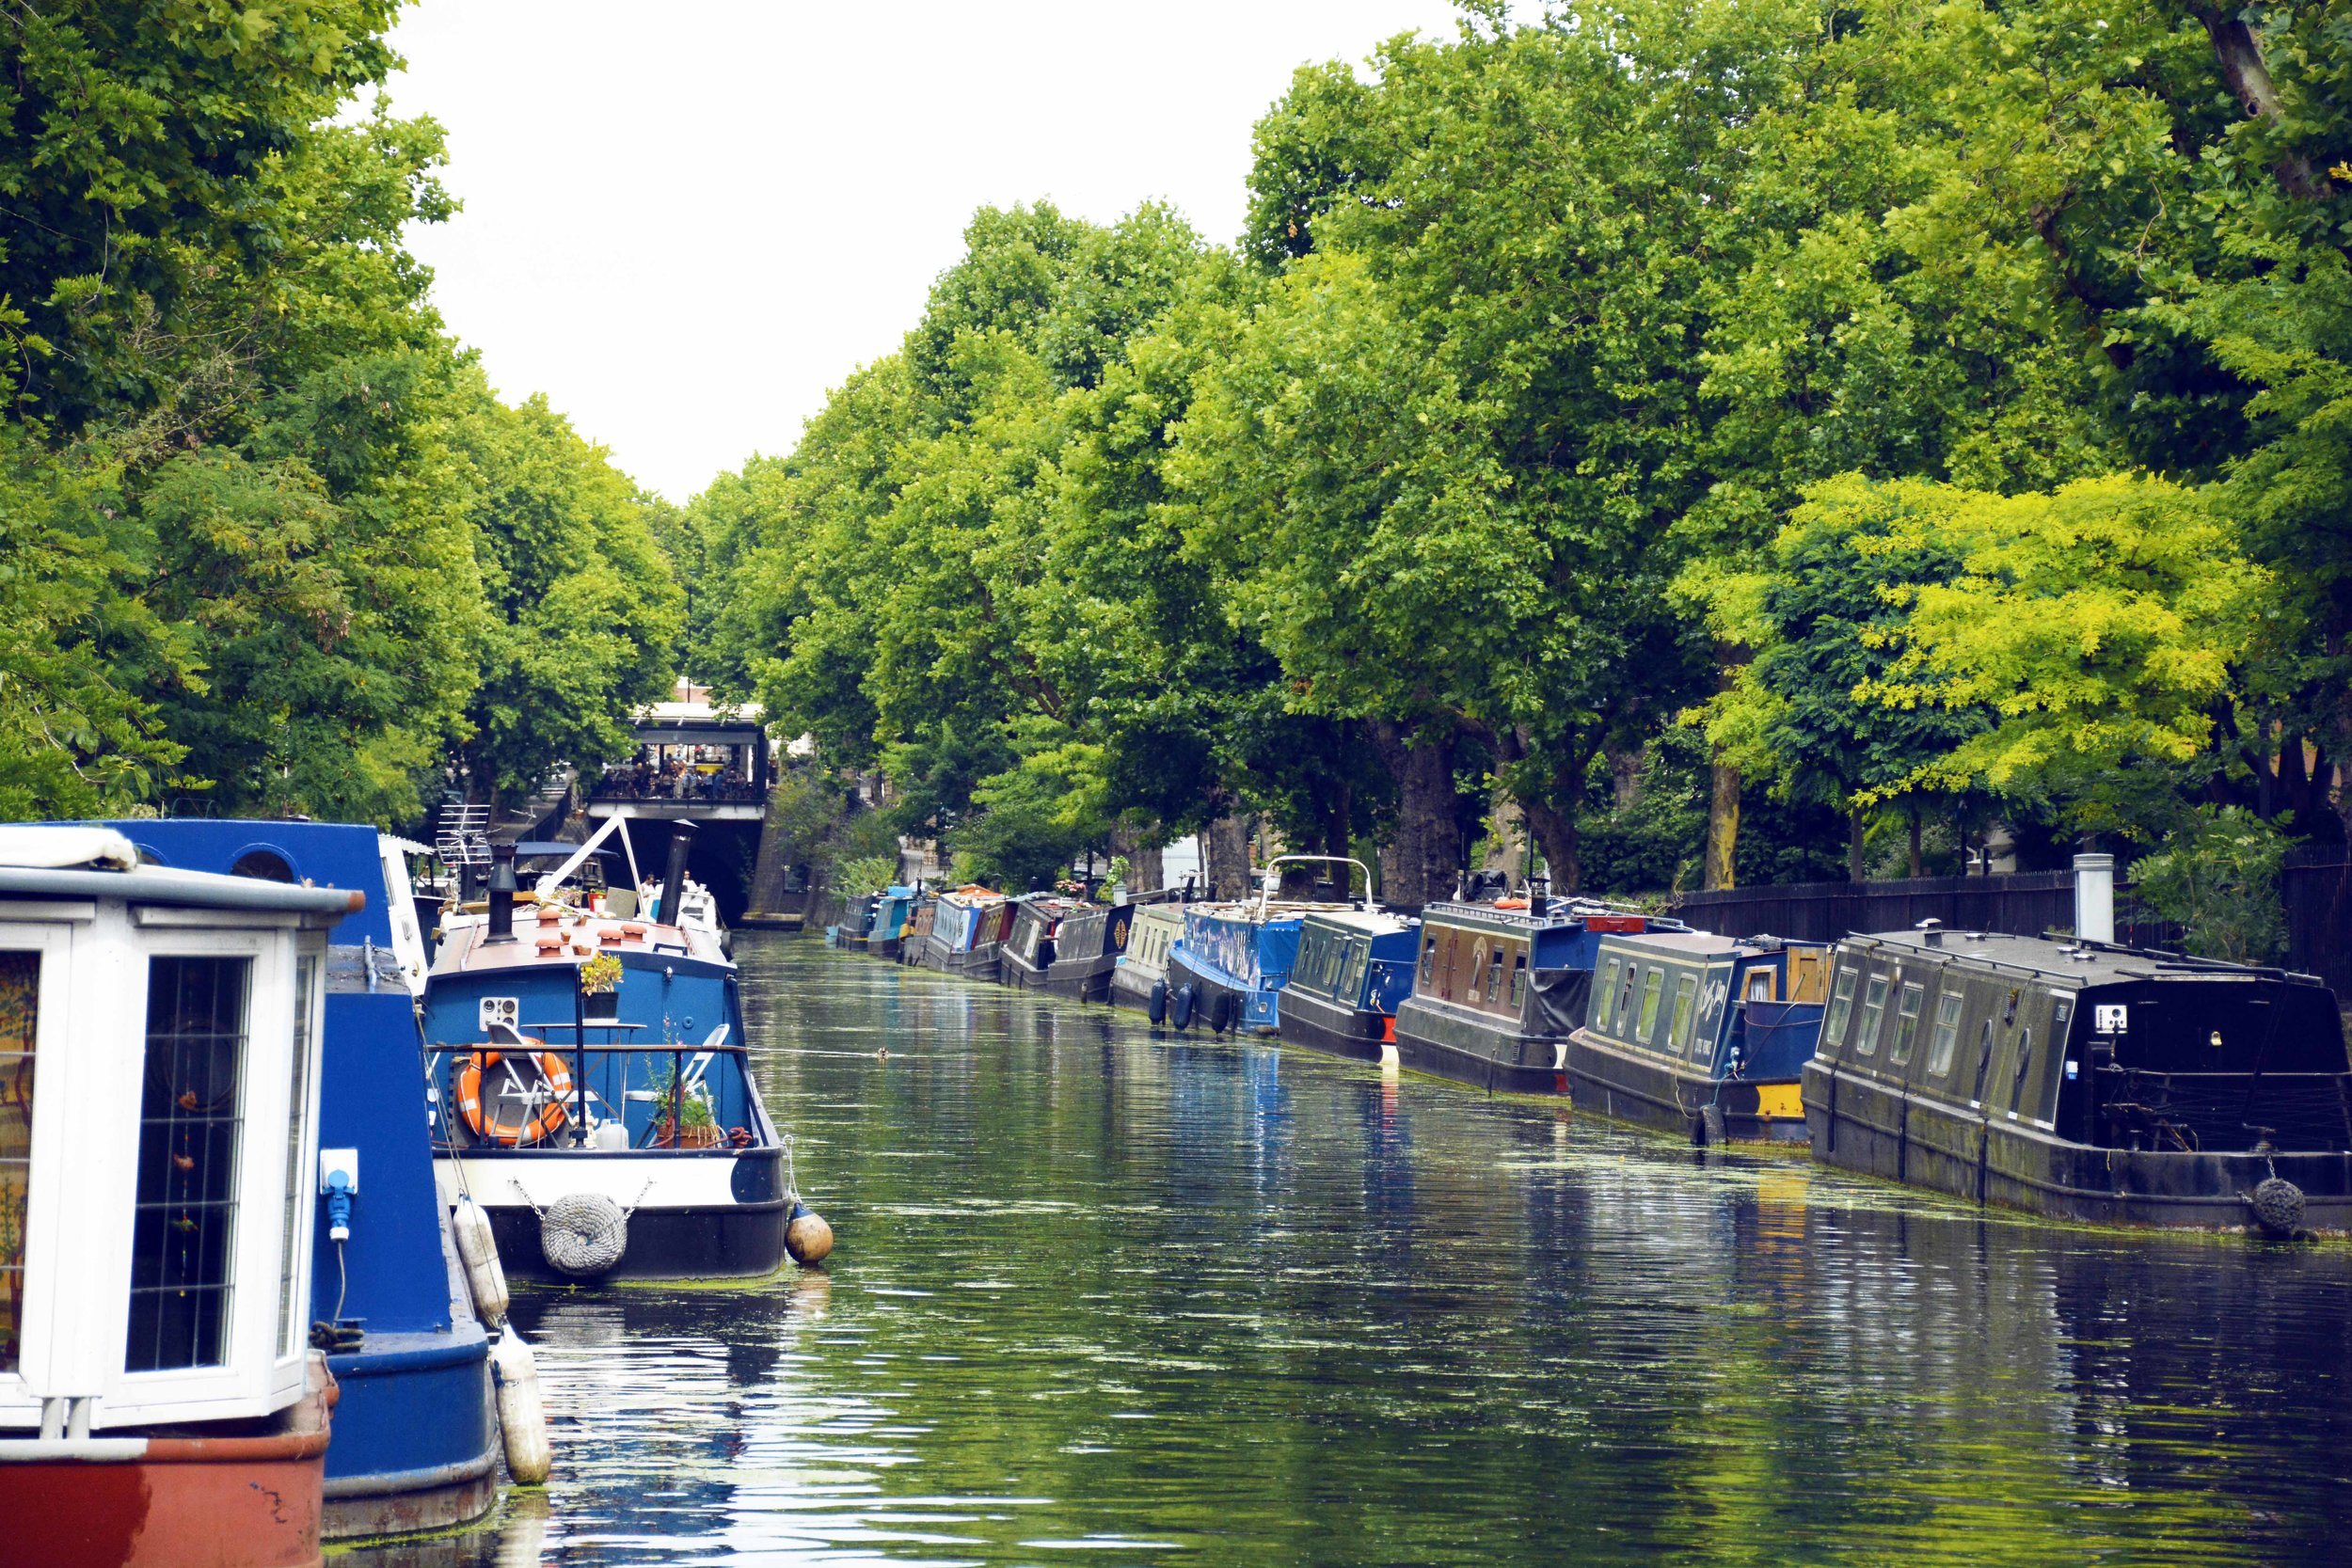 Regent's Canal & Little Venice - Relaxing canals, breathtaking views and picturesque harbours and parks.